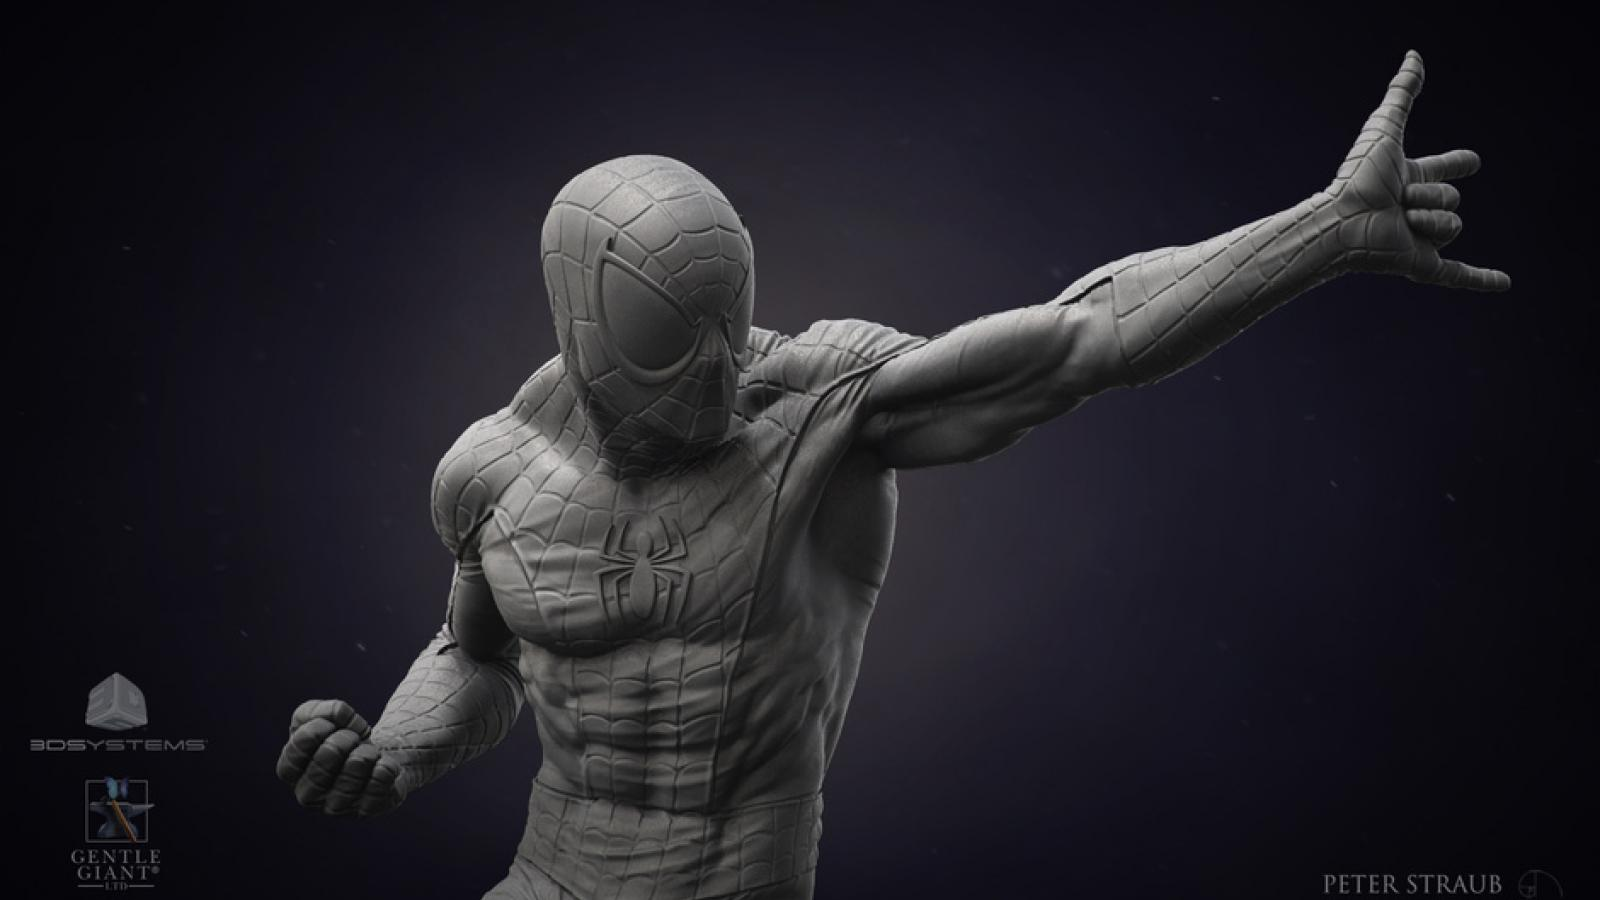 Superb CG 3D Sculptures by Peter Straub